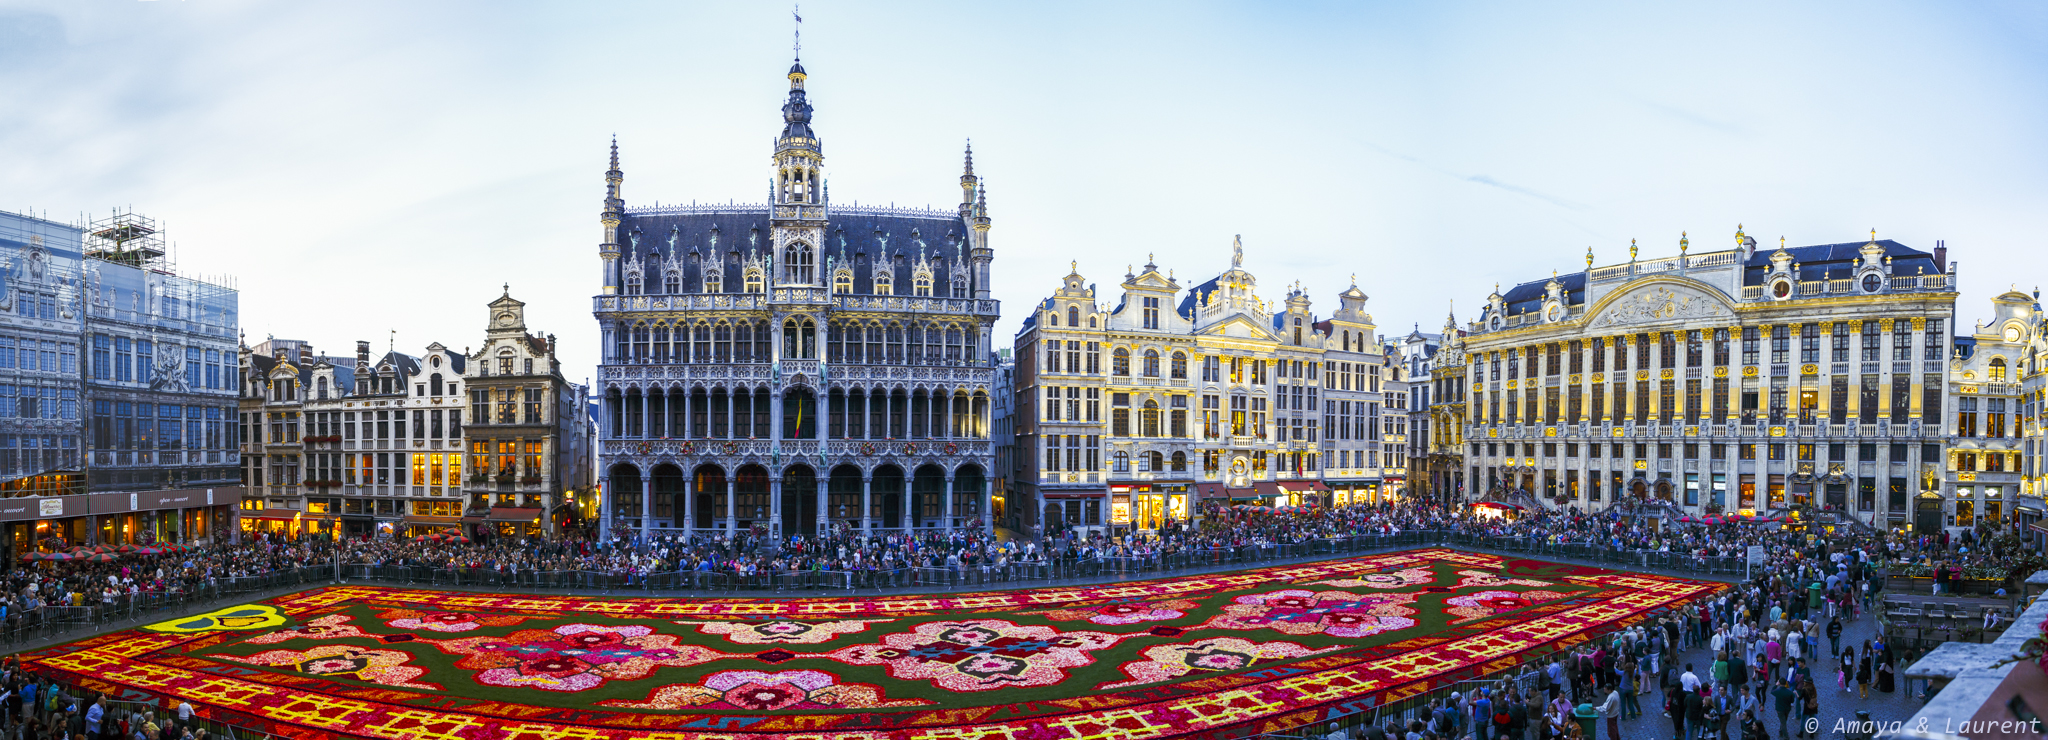 Tapis de fleurs bruxelles le monde en photo - Office de tourisme bruxelles grand place ...